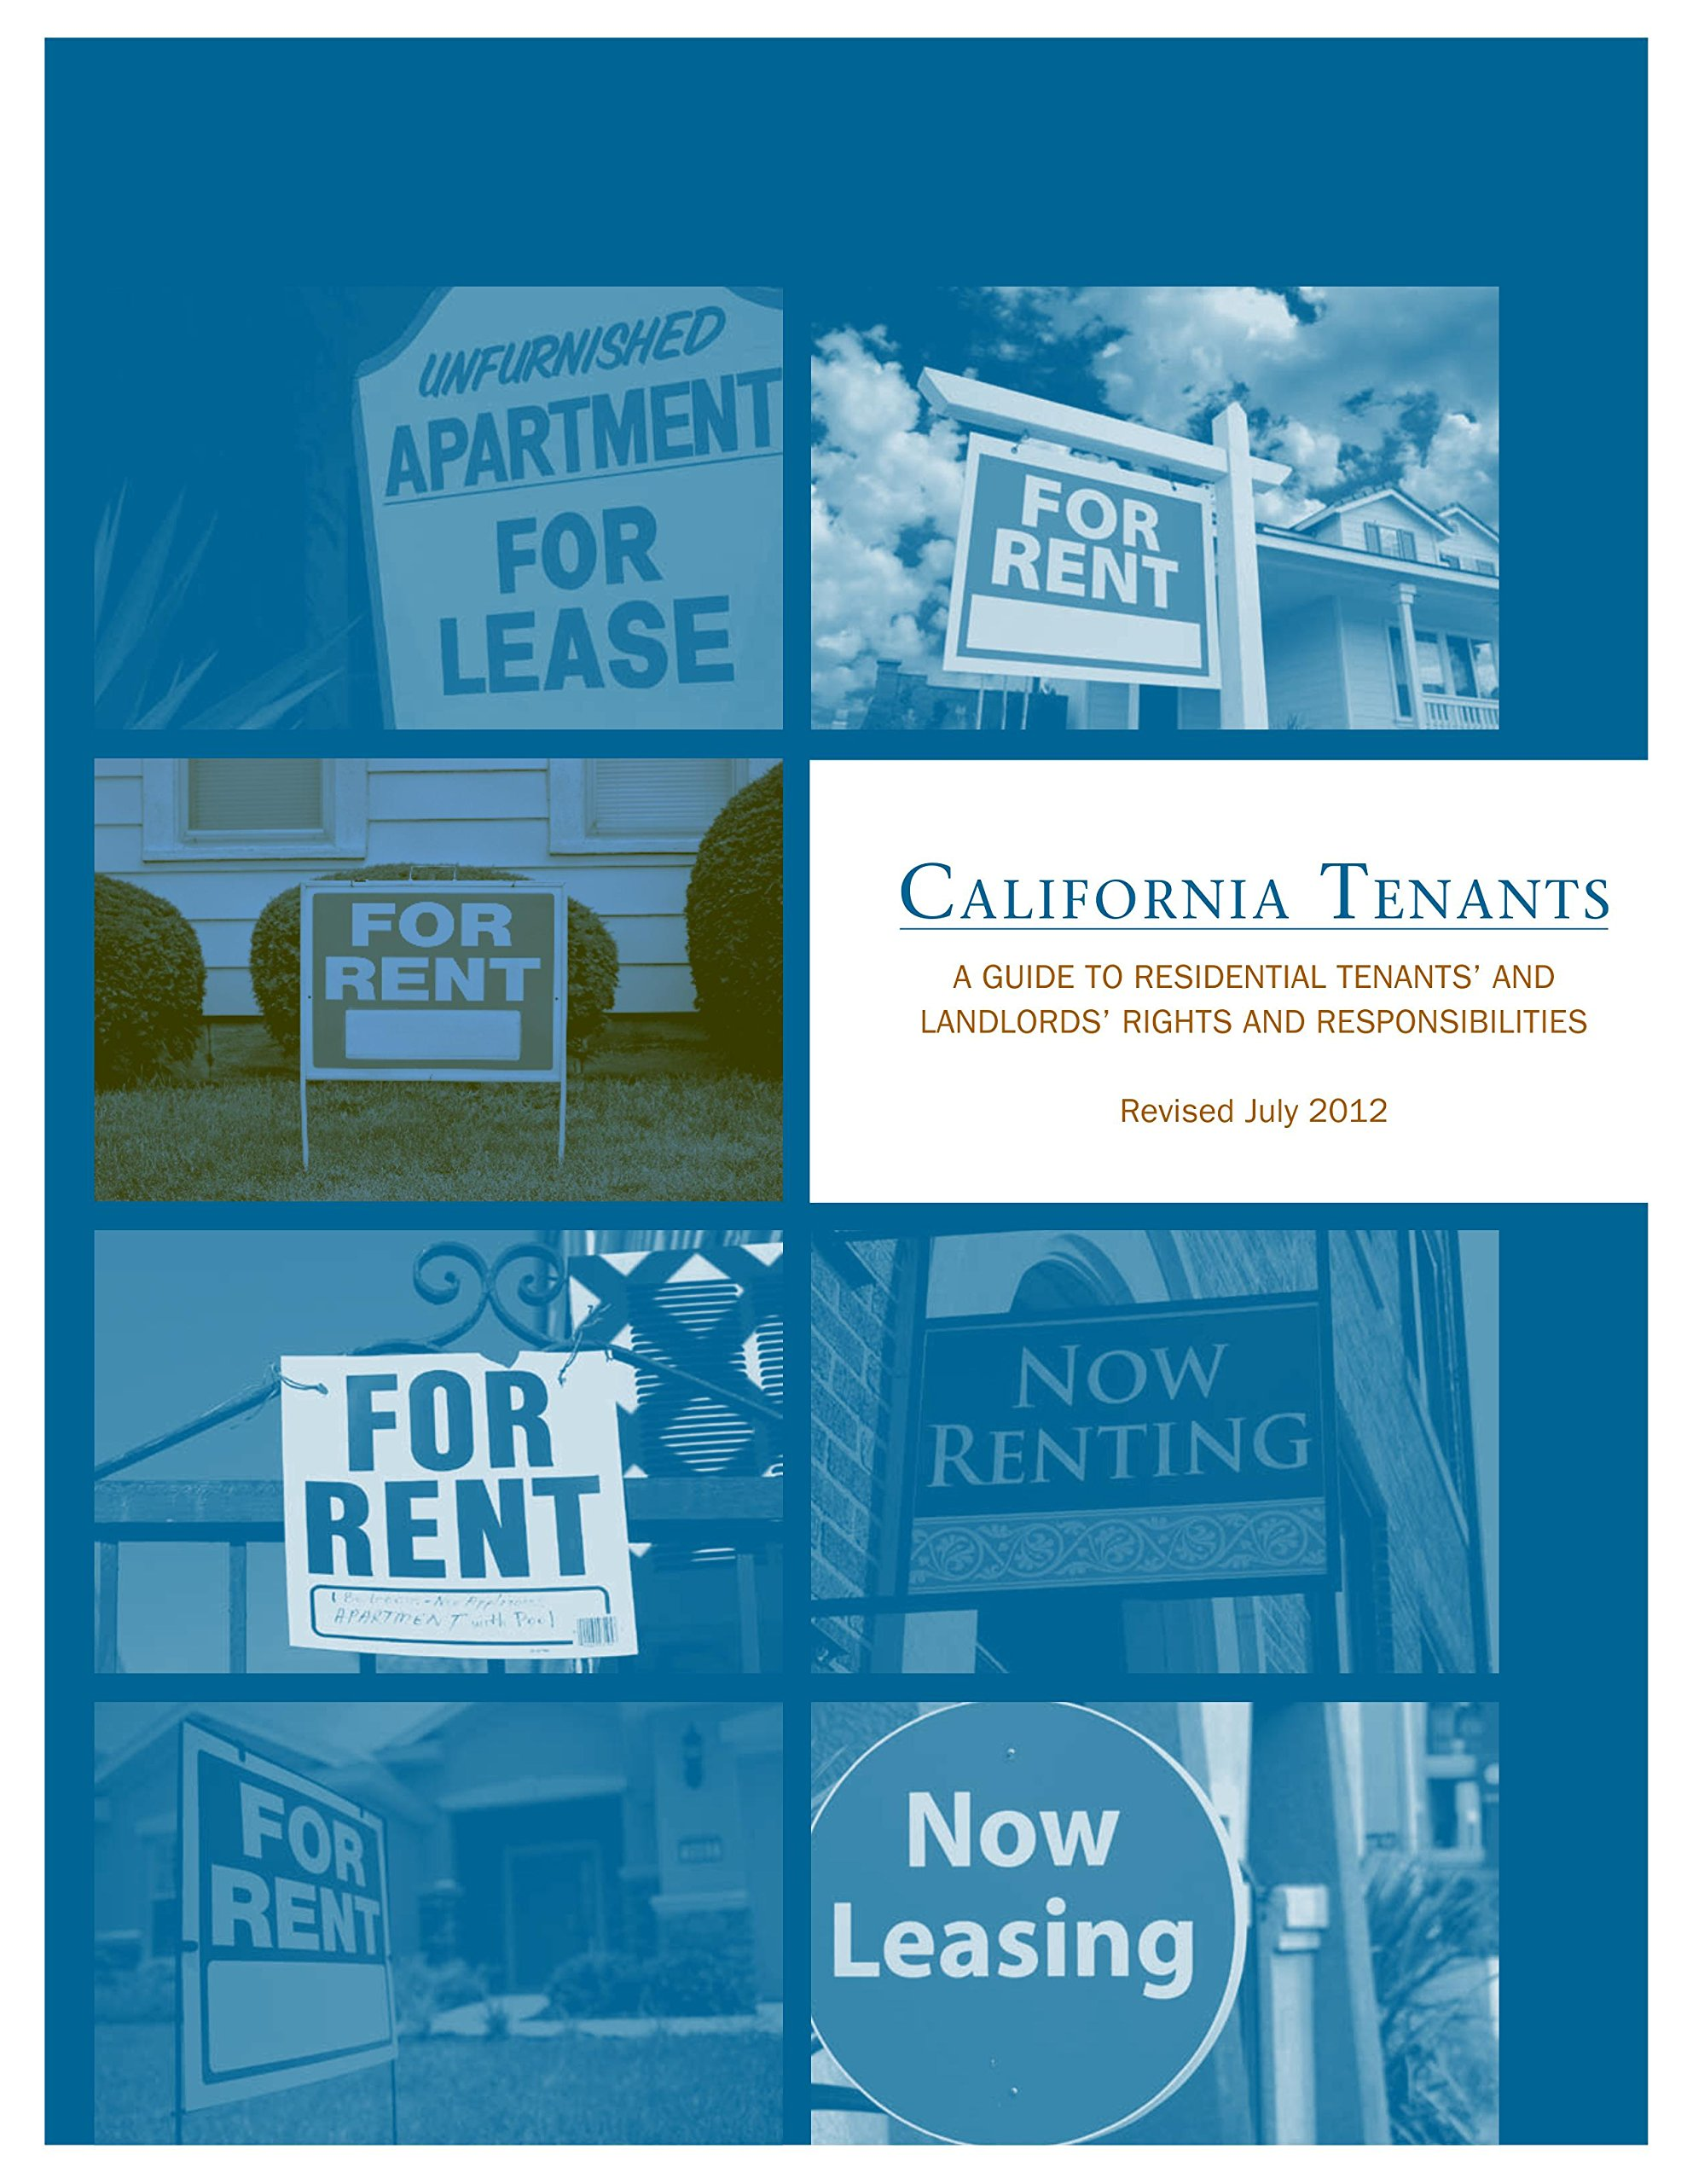 California tenants a guide to residential tenants' and.